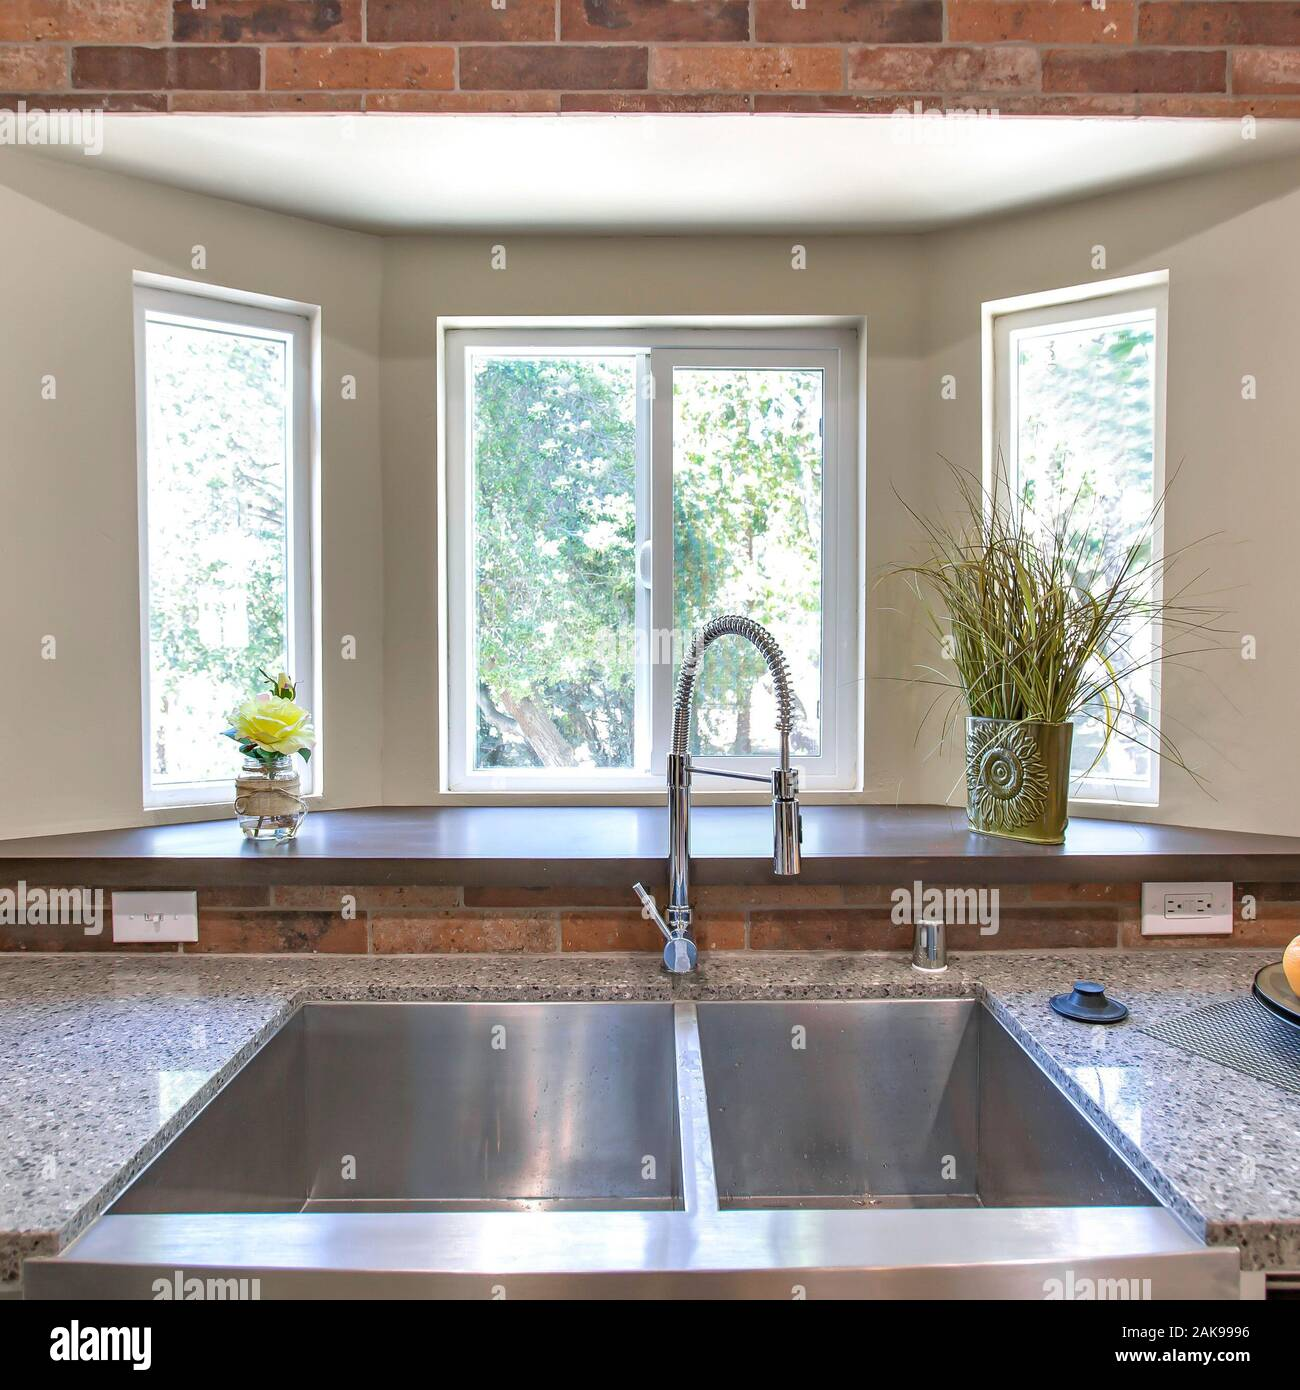 Square Kitchen Sink Close Up With Bay Windows In The Background Stock Photo Alamy